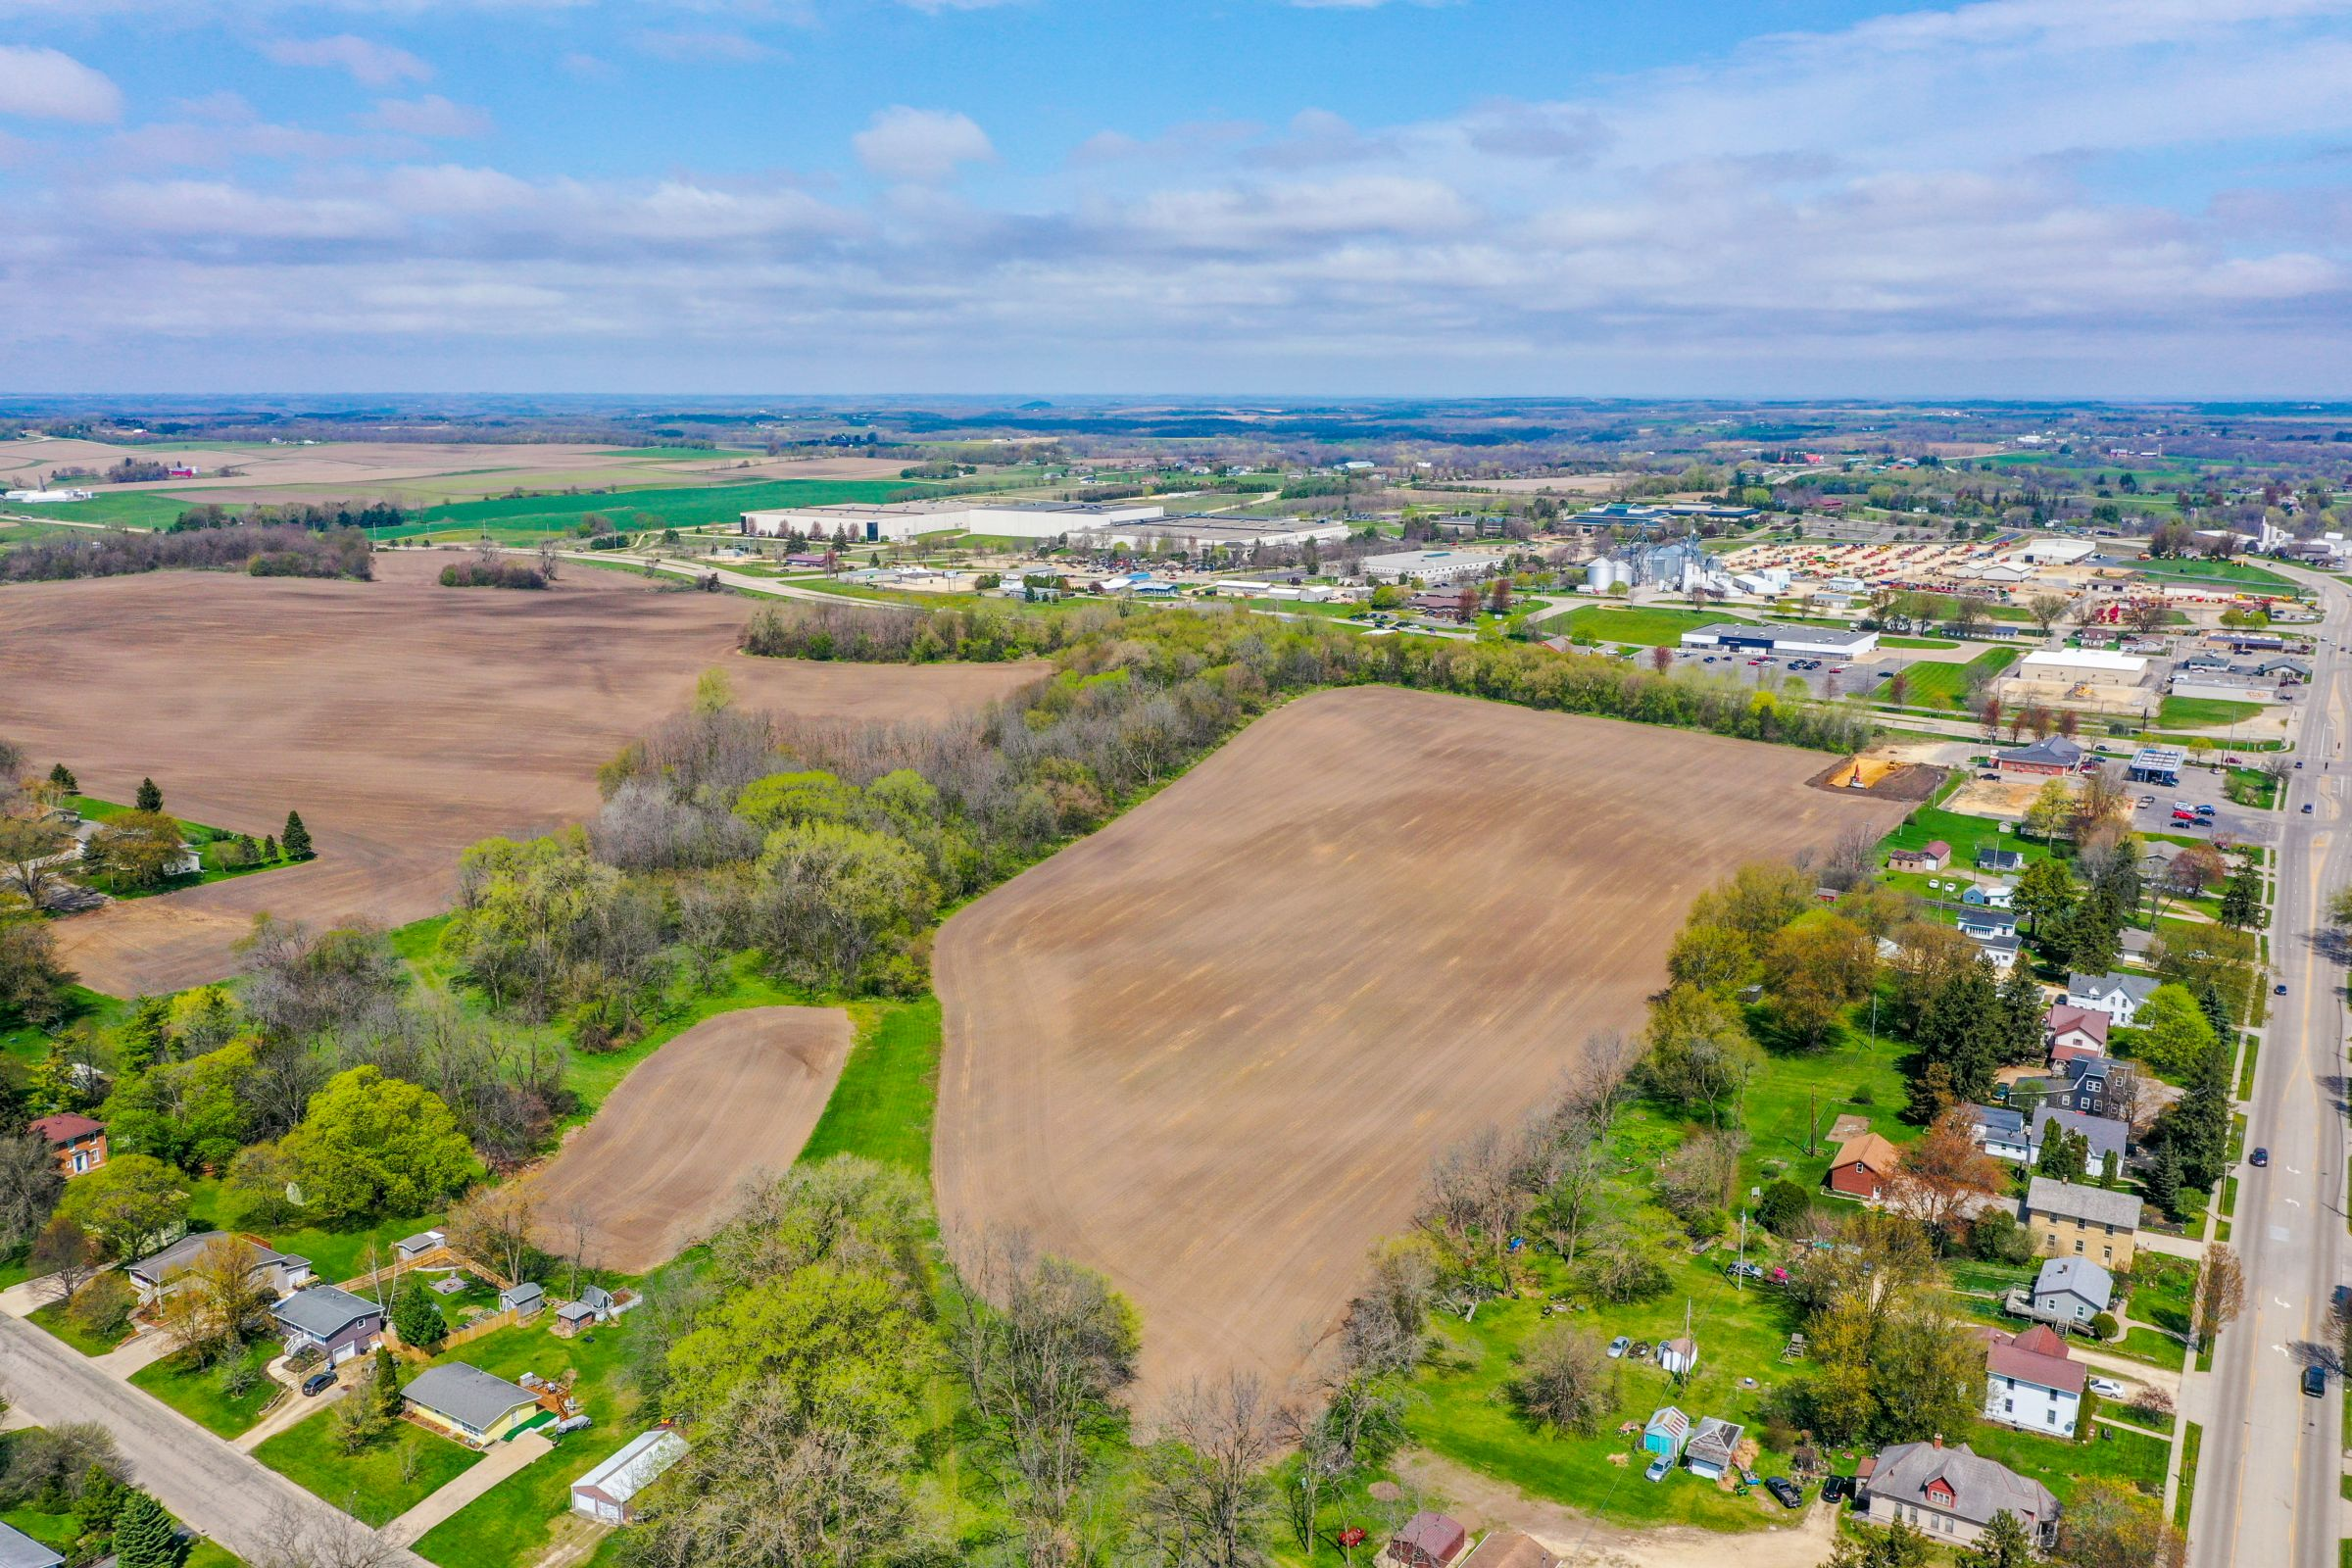 development-land-commercial-iowa-county-wisconsin-152-acres-listing-number-15474-0-2021-05-18-154941.jpg